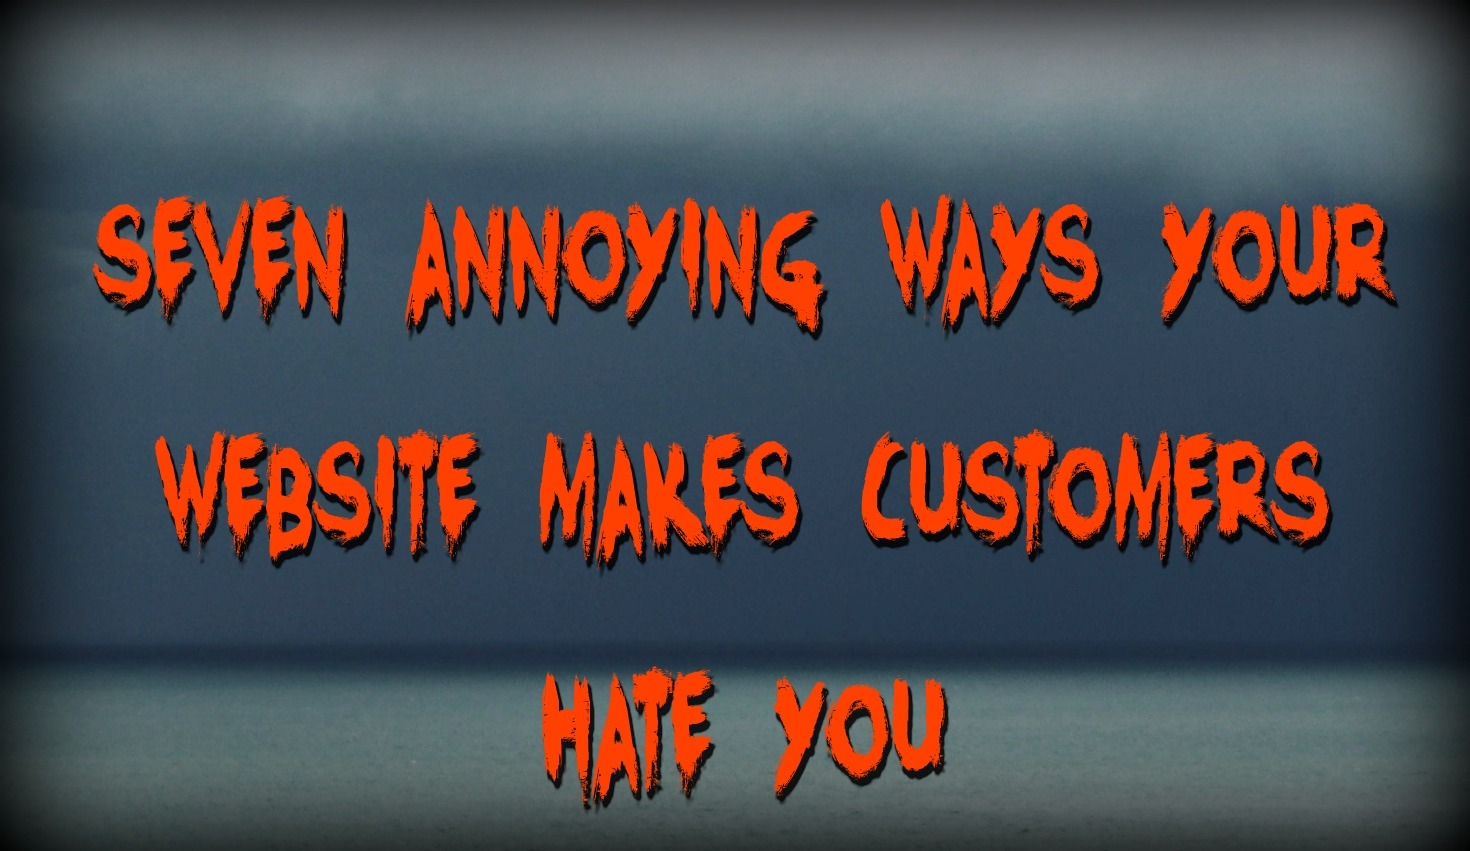 7 annoying ways your website content makes customers hate you